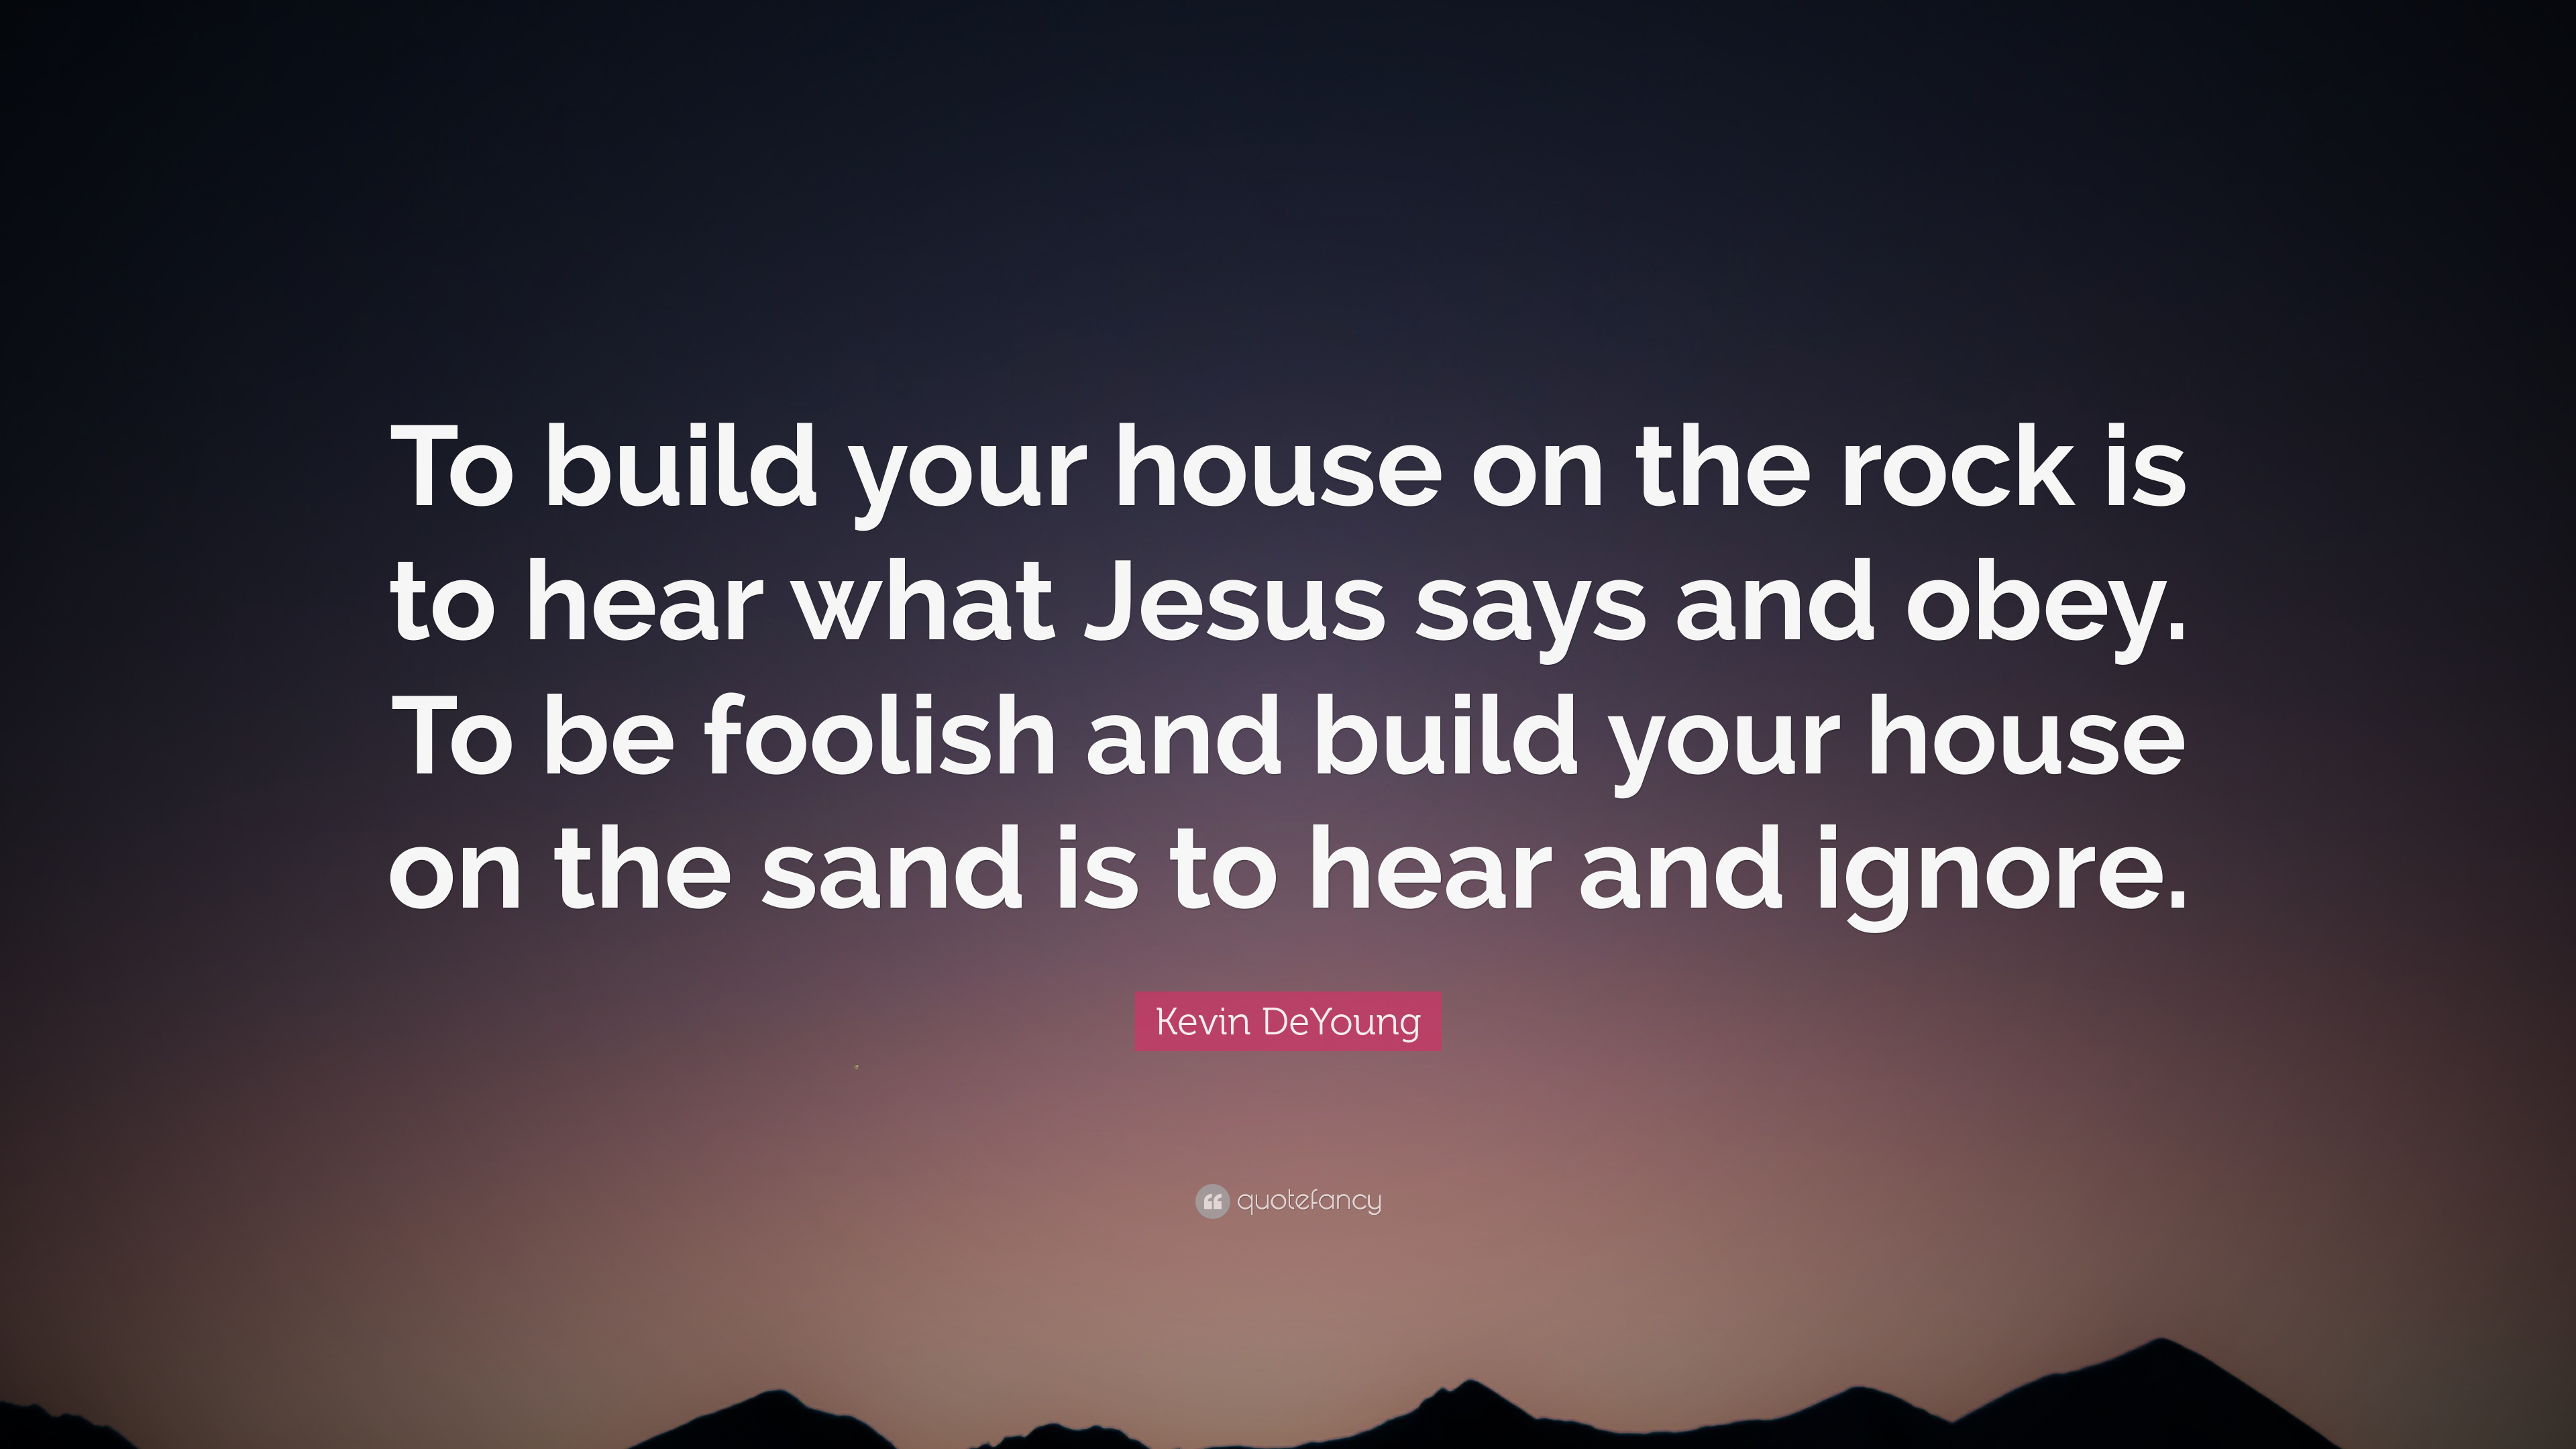 Elegant Kevin DeYoung Quote: U201cTo Build Your House On The Rock Is To Hear What